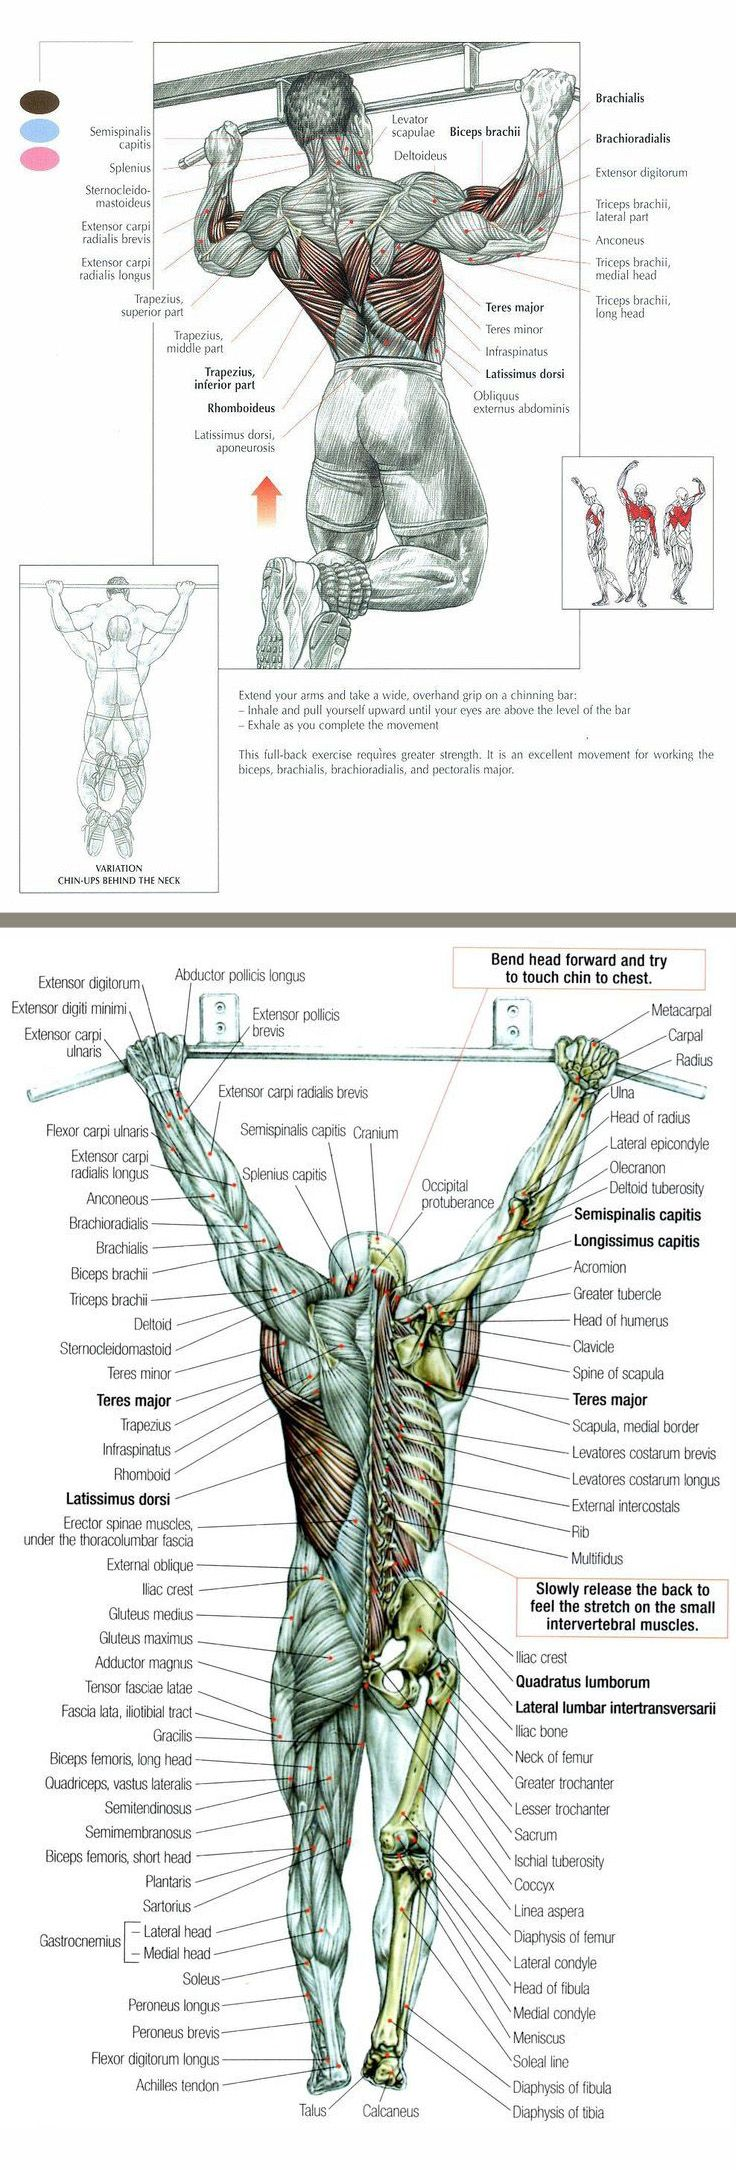 The Pullup Exercise Anatomy | Pinterest | Anatomy, Exercises and Workout